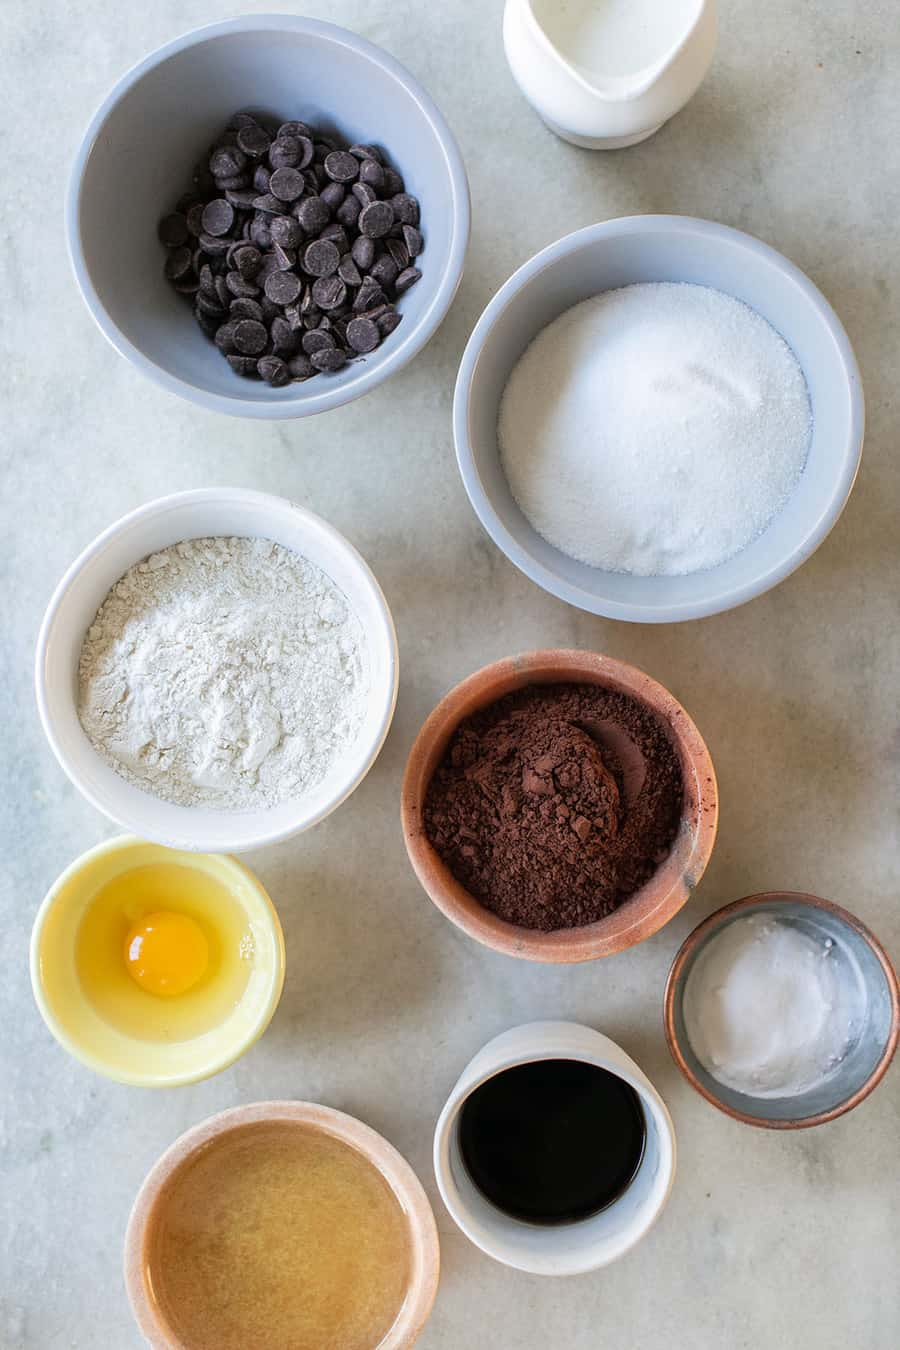 flour, cocoa powder, chocolate chips, coffee, egg, oil ,baking powder and chocolate chips